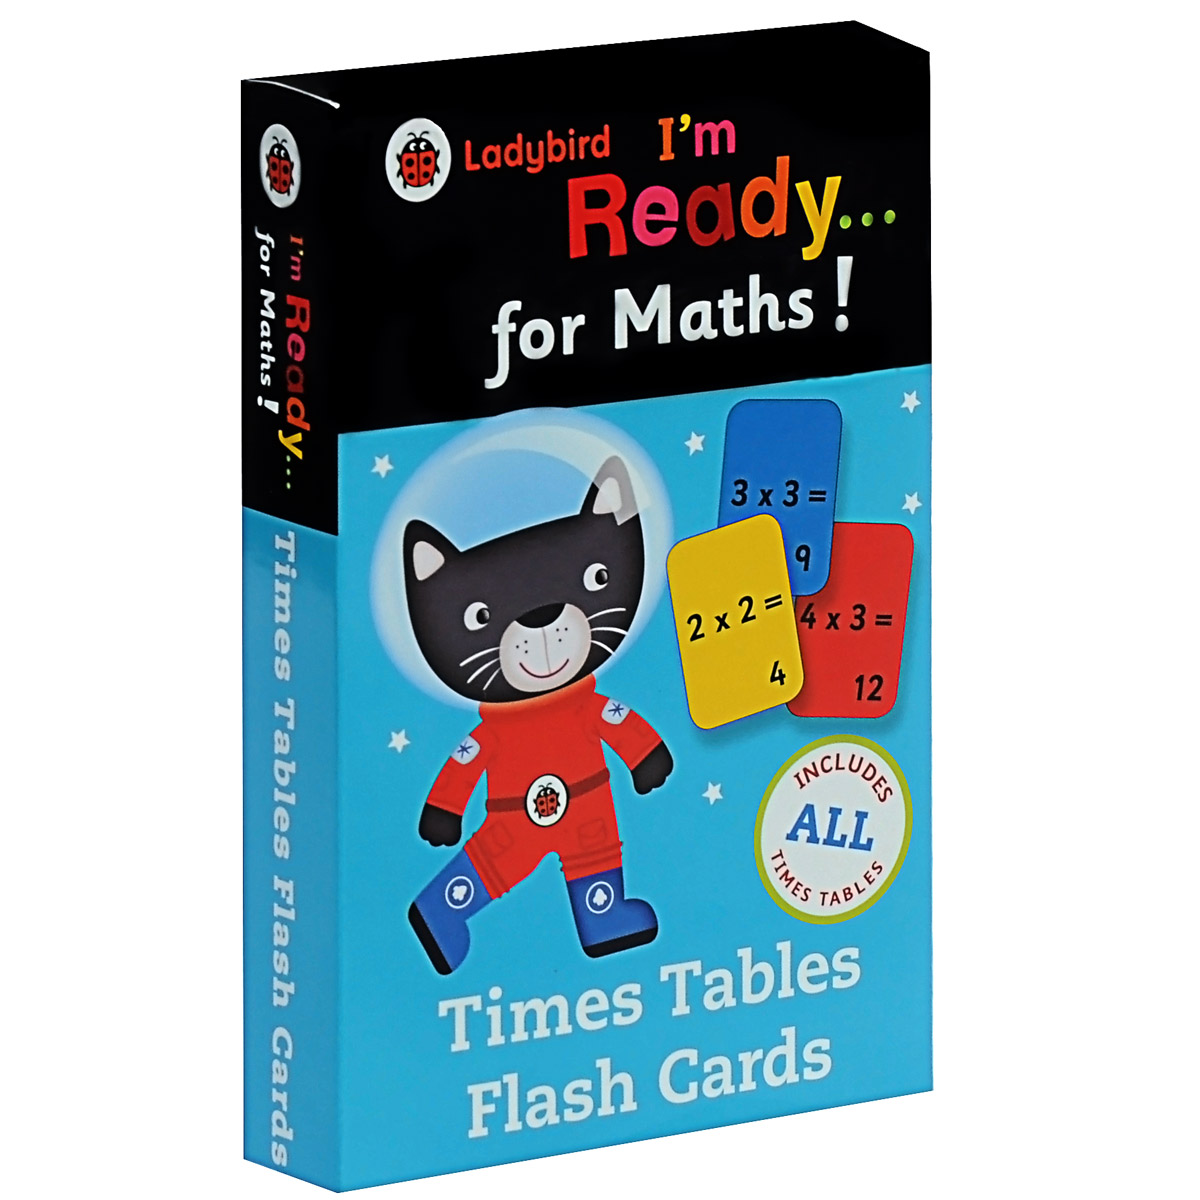 I'm Ready... for Maths! Time Tables Flash Cards roger priddy let s get ready for school simple maths маркер